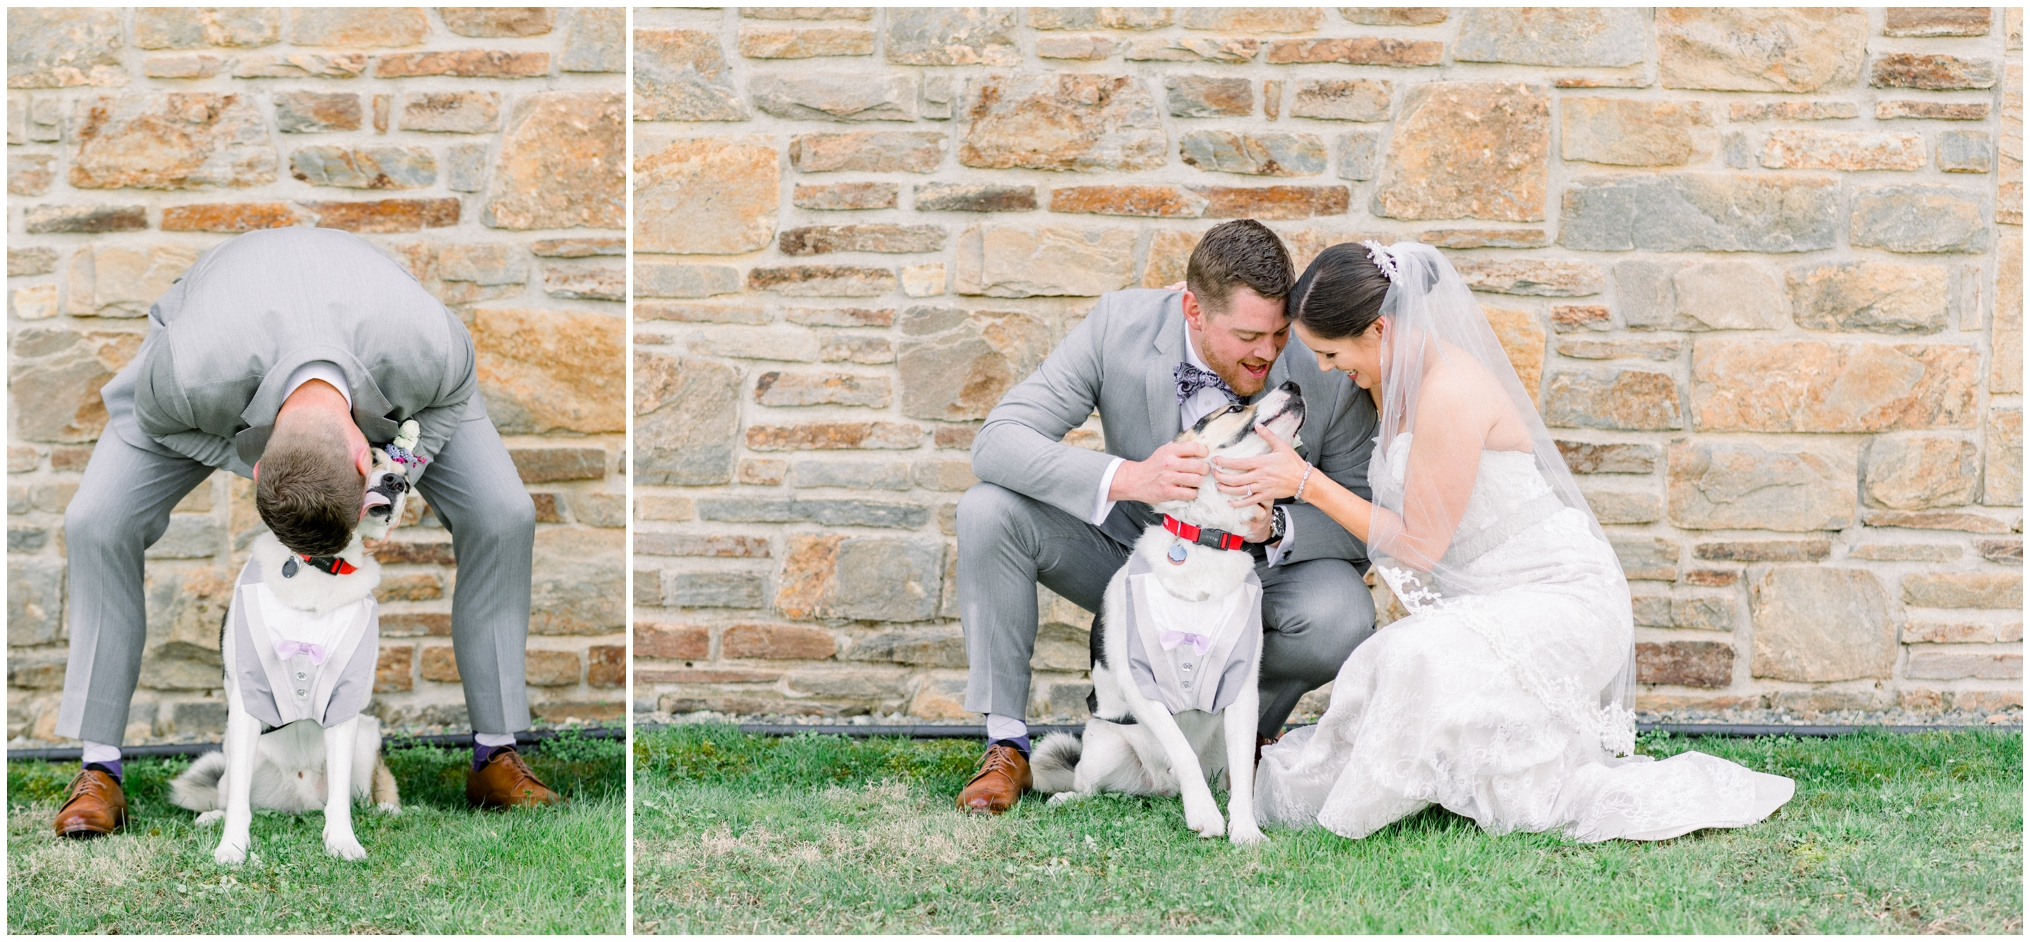 Krista Brackin Photography | April Wedding at The Carriage House at Rockwood Park_0039.jpg